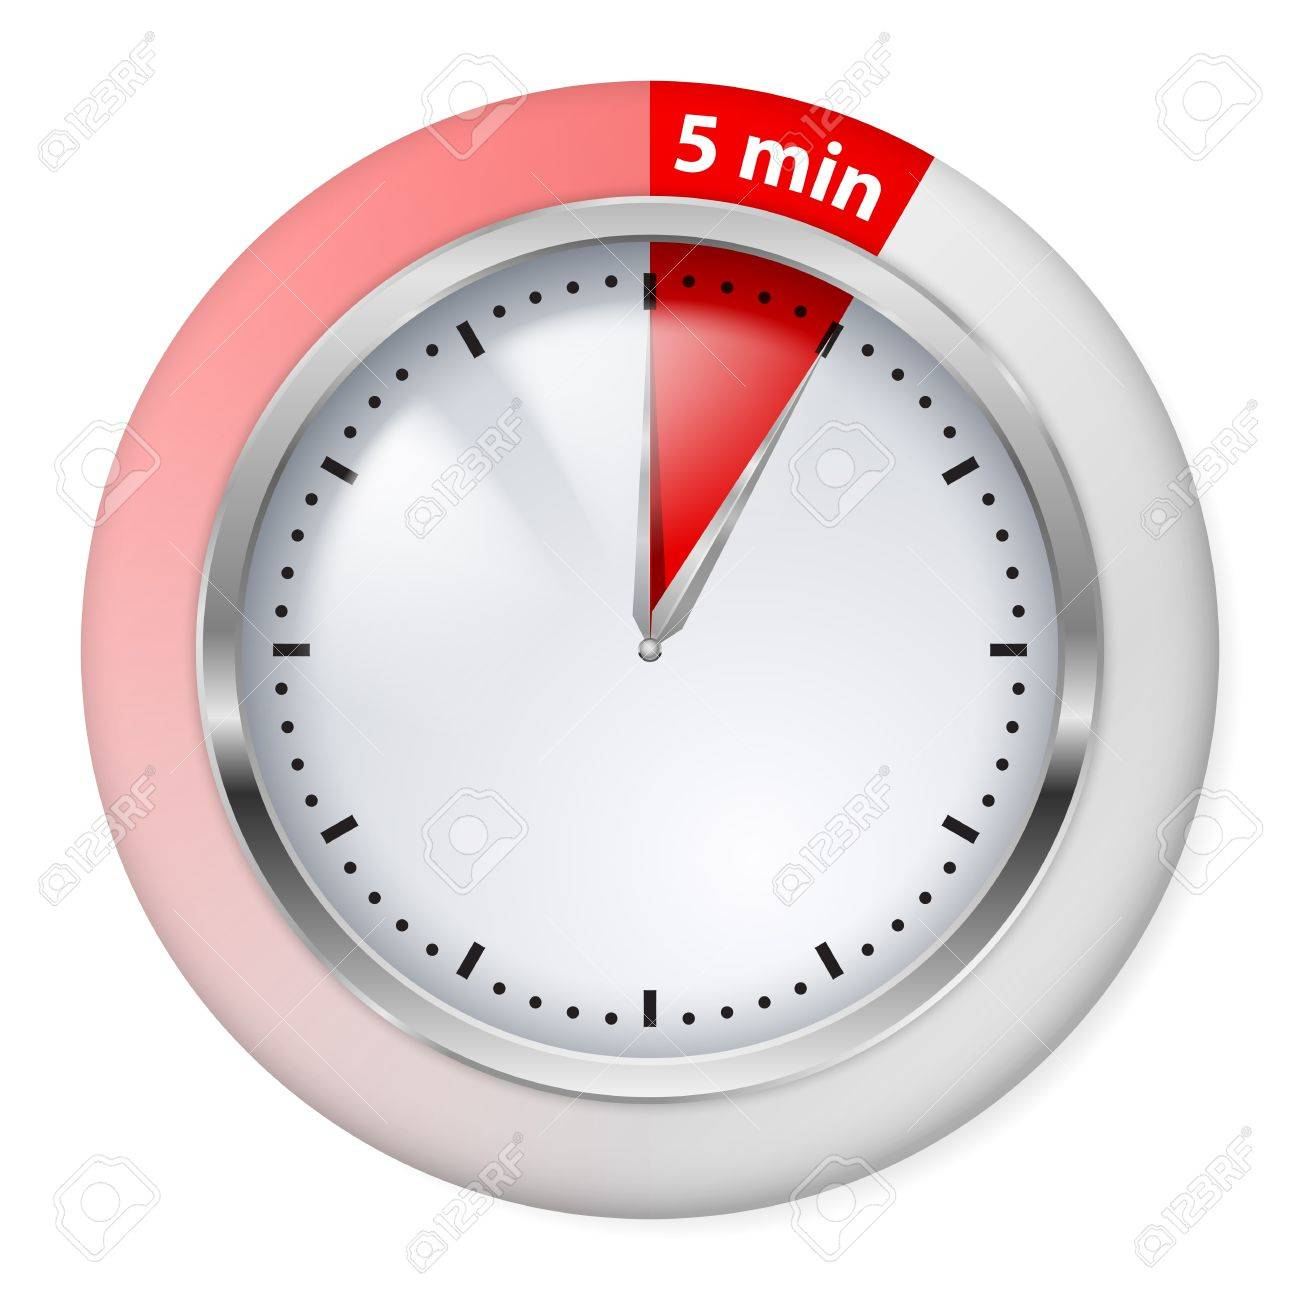 red timer icon five minutes illustration on white royalty free